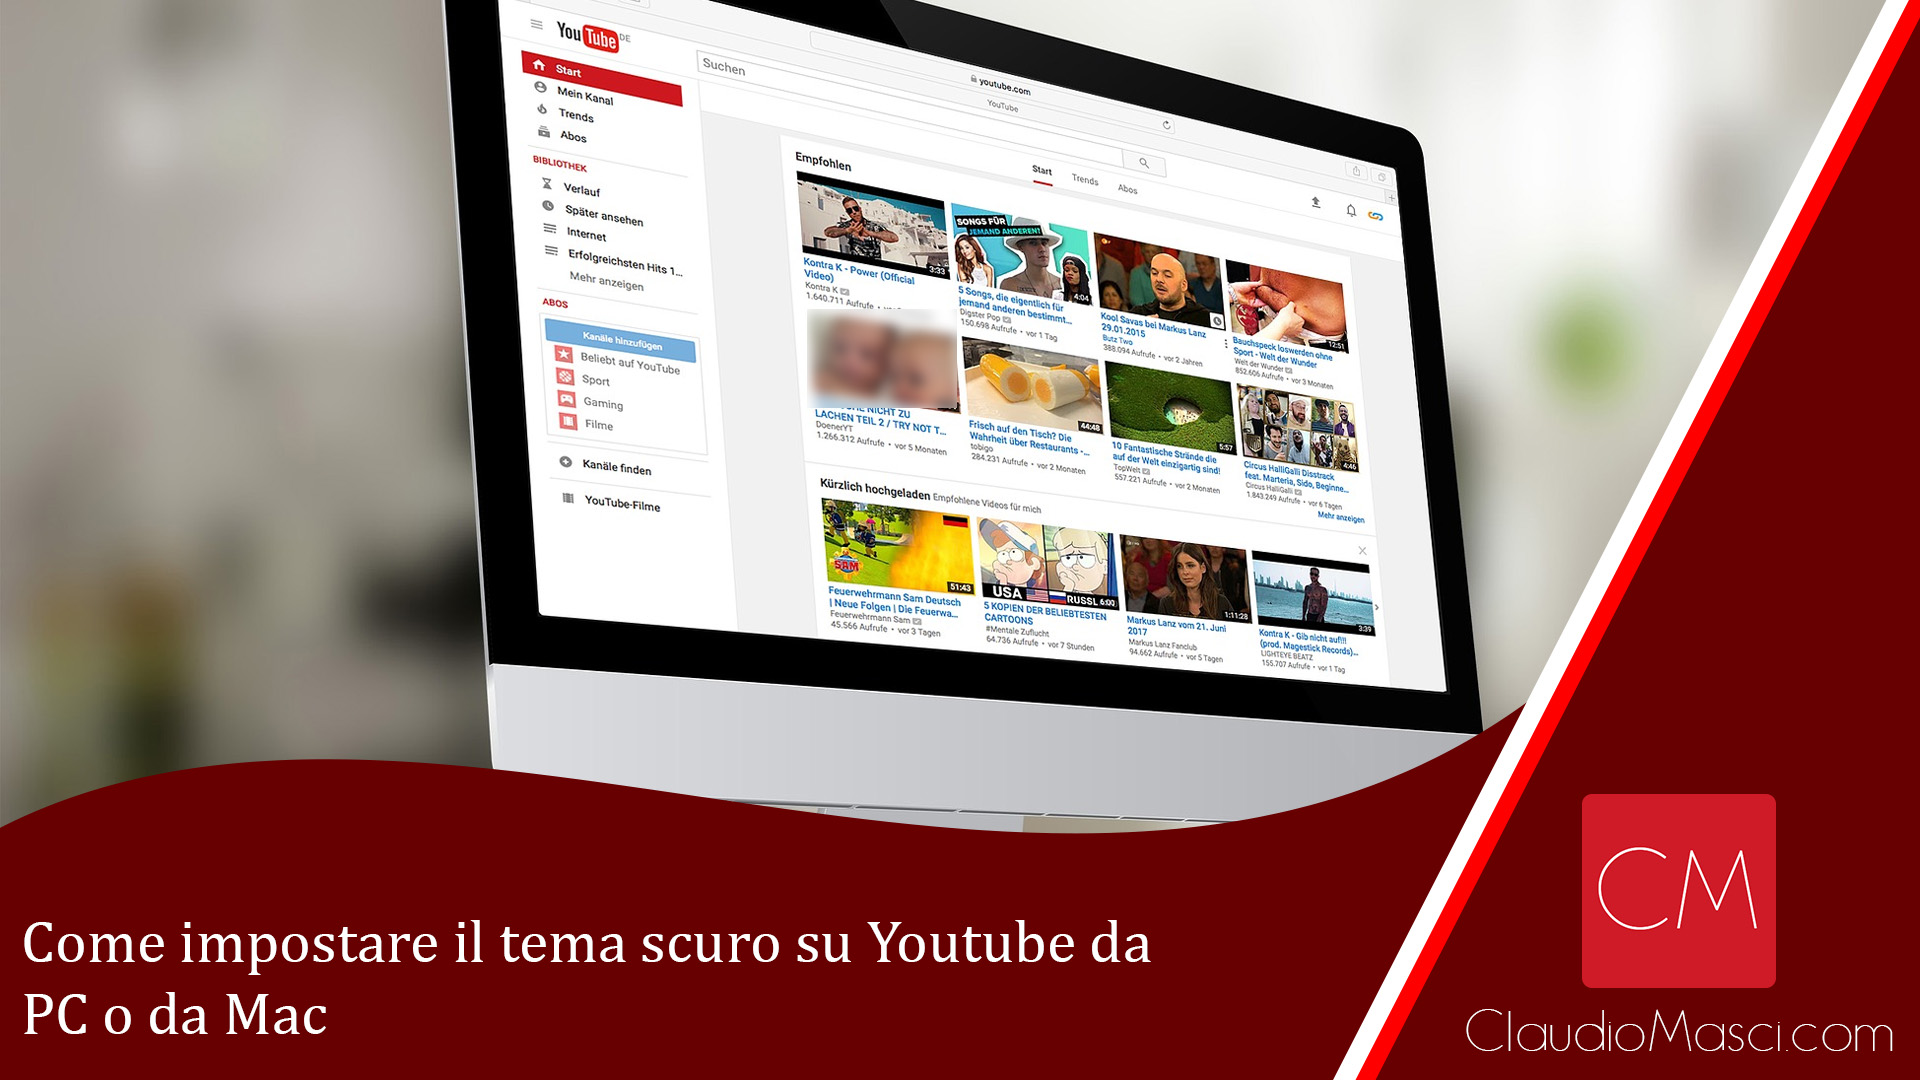 Come impostare il tema scuro su Youtube da PC e Mac